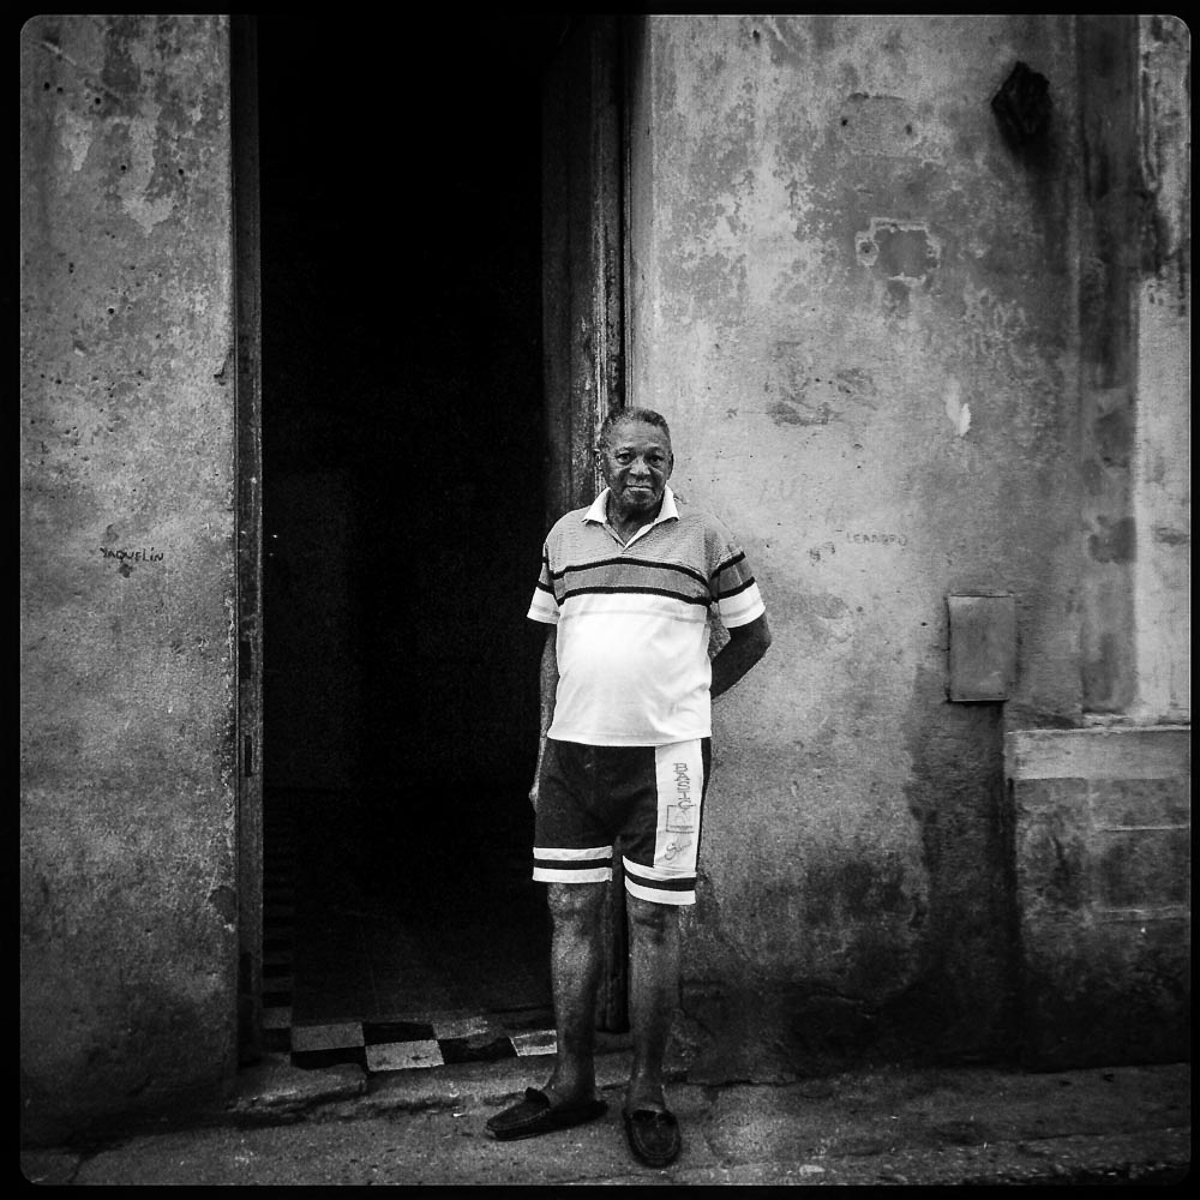 Man in Doorway,  Havana Cuba 2014